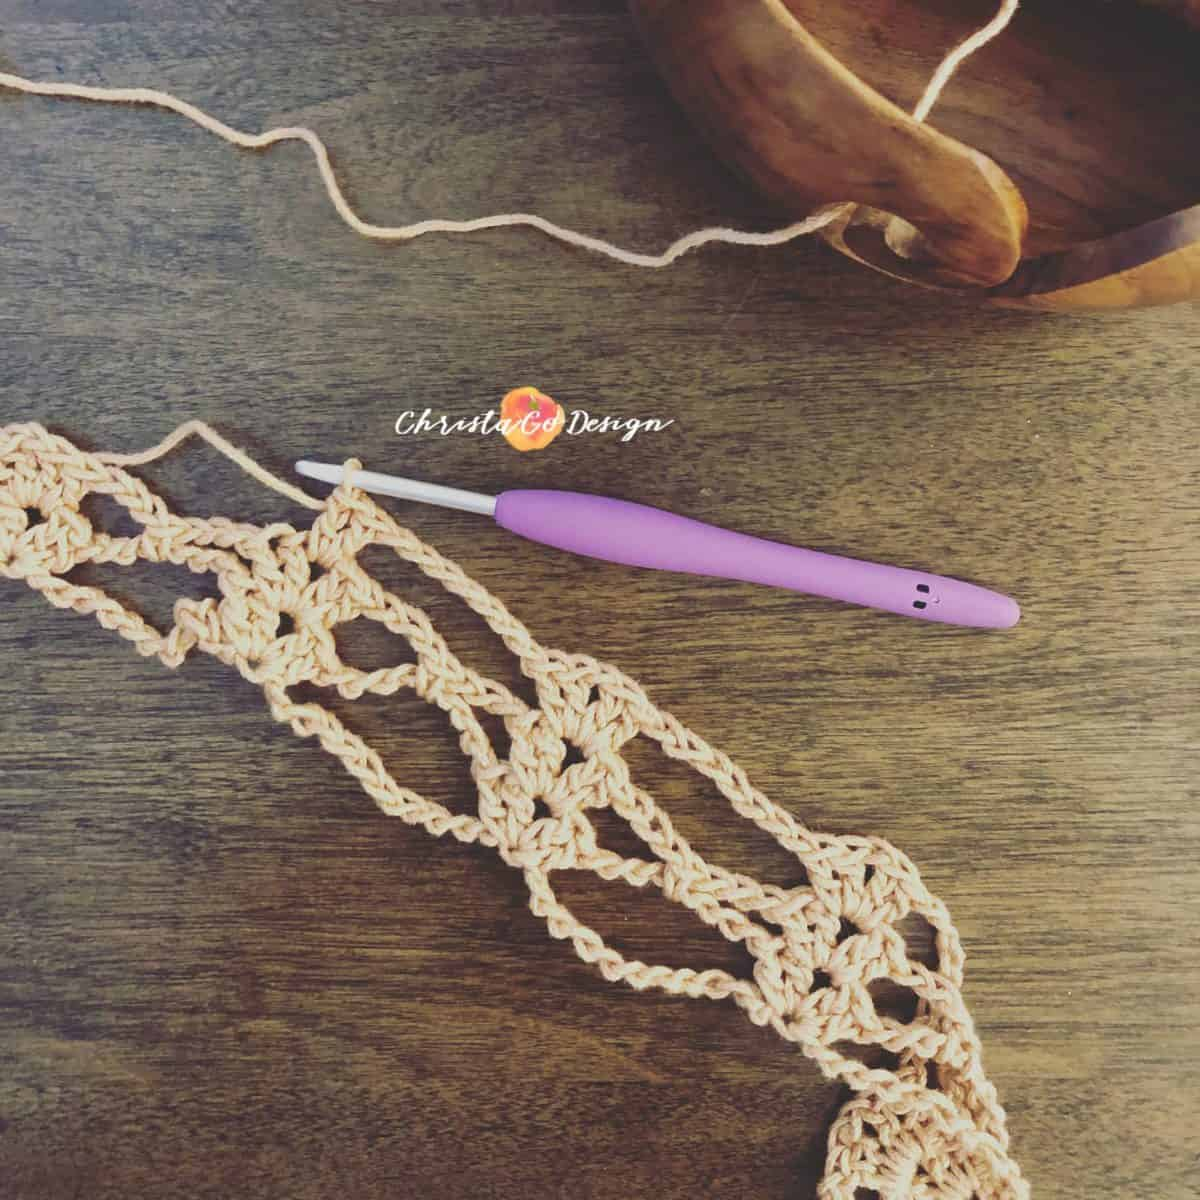 Iris Stitch Crochet Photo & Video Tutorial